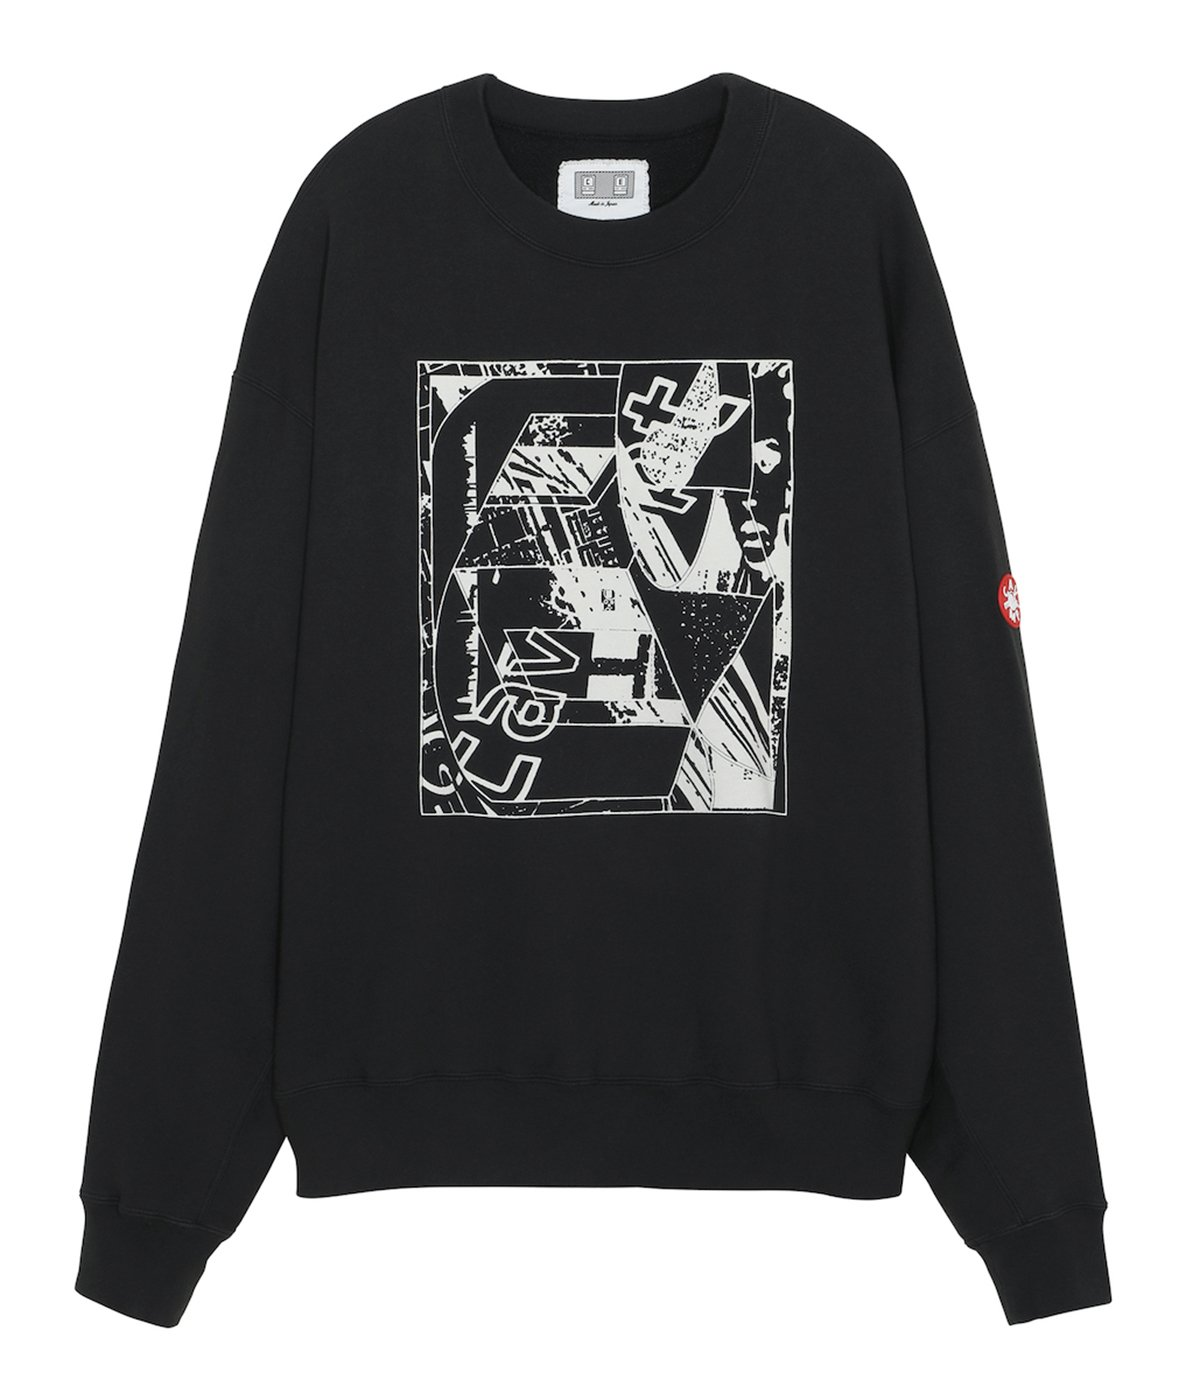 PRODUCTION AND CONSUMPTION CREW NECK